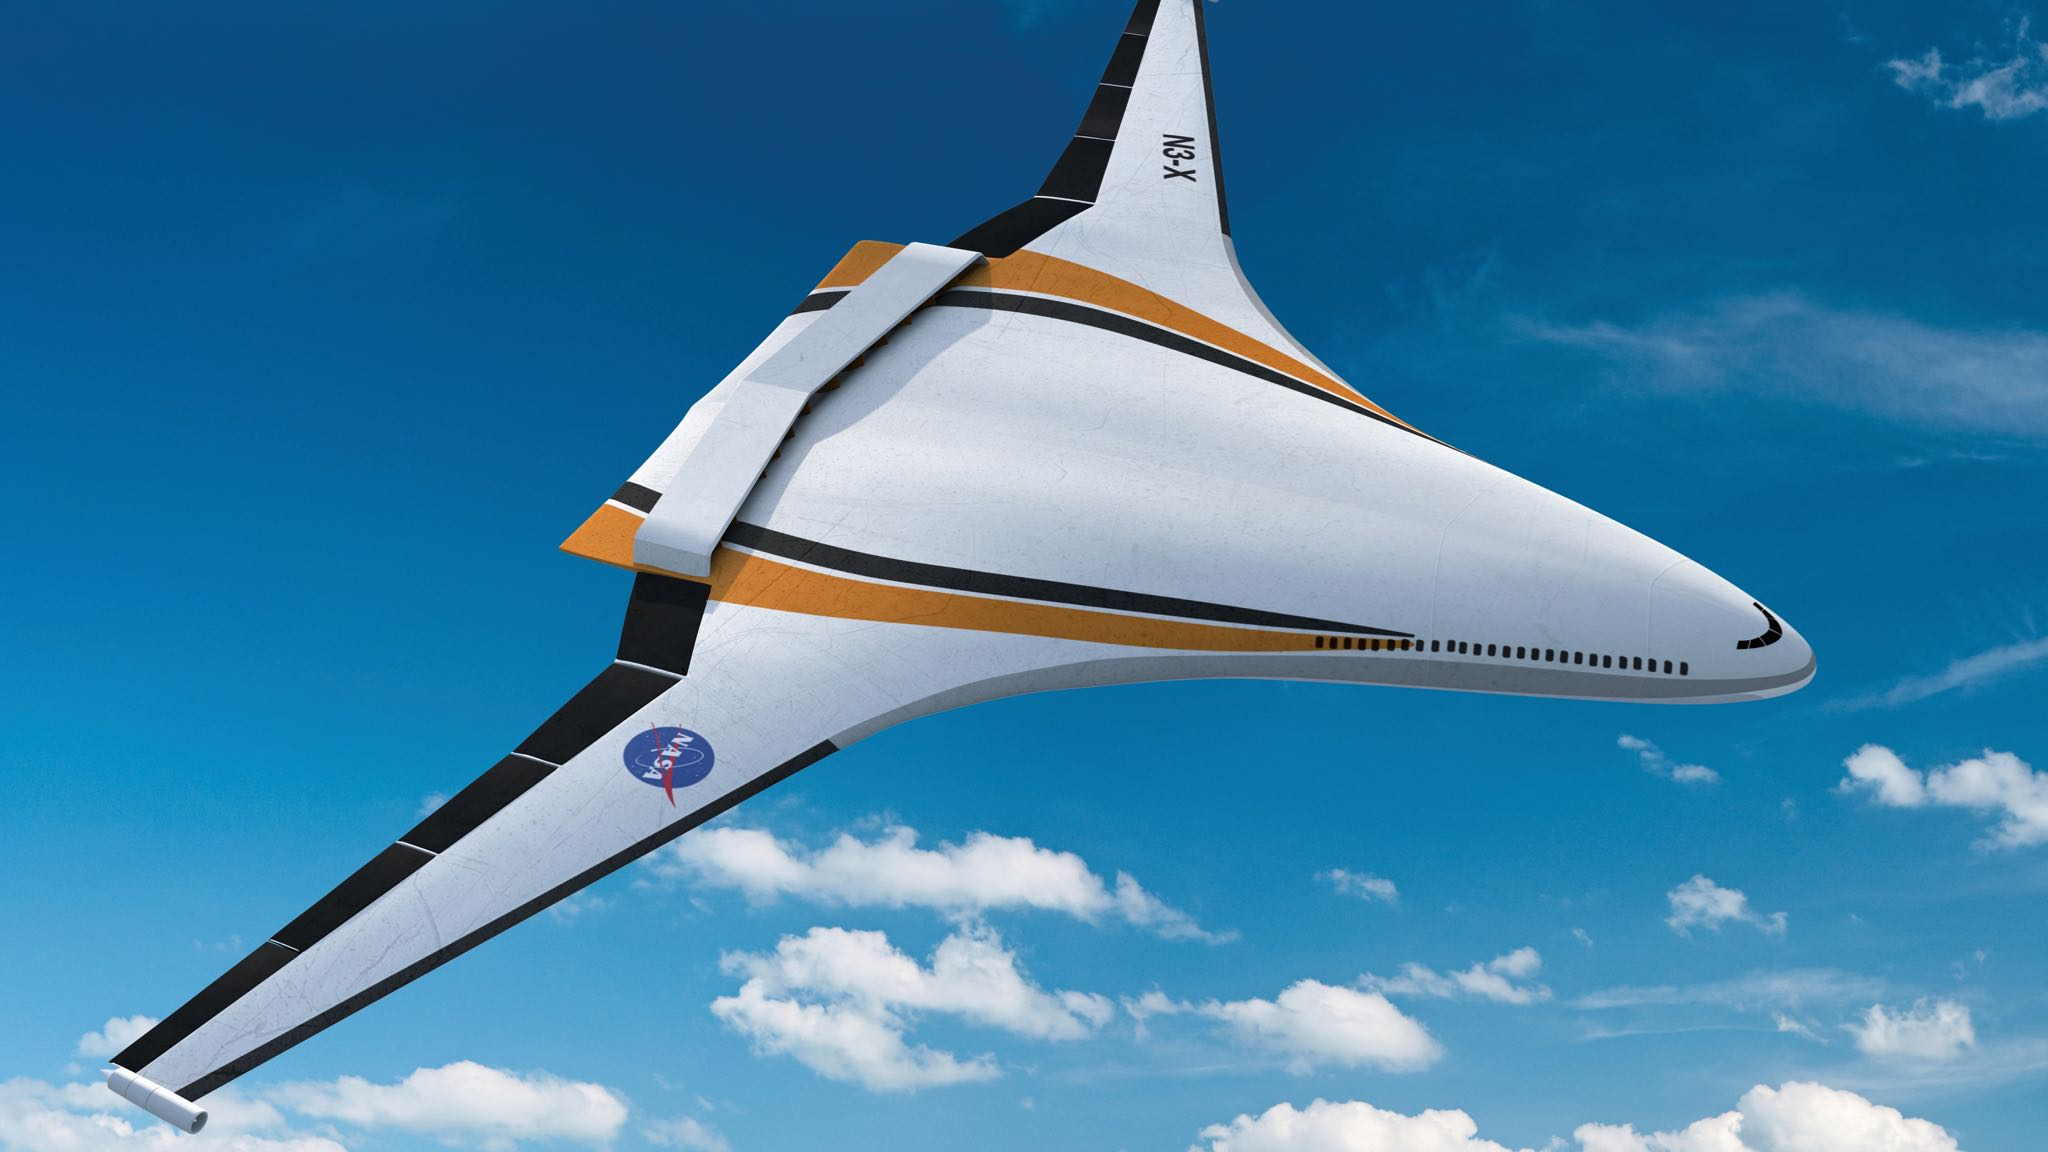 mockup of future electric aircraft